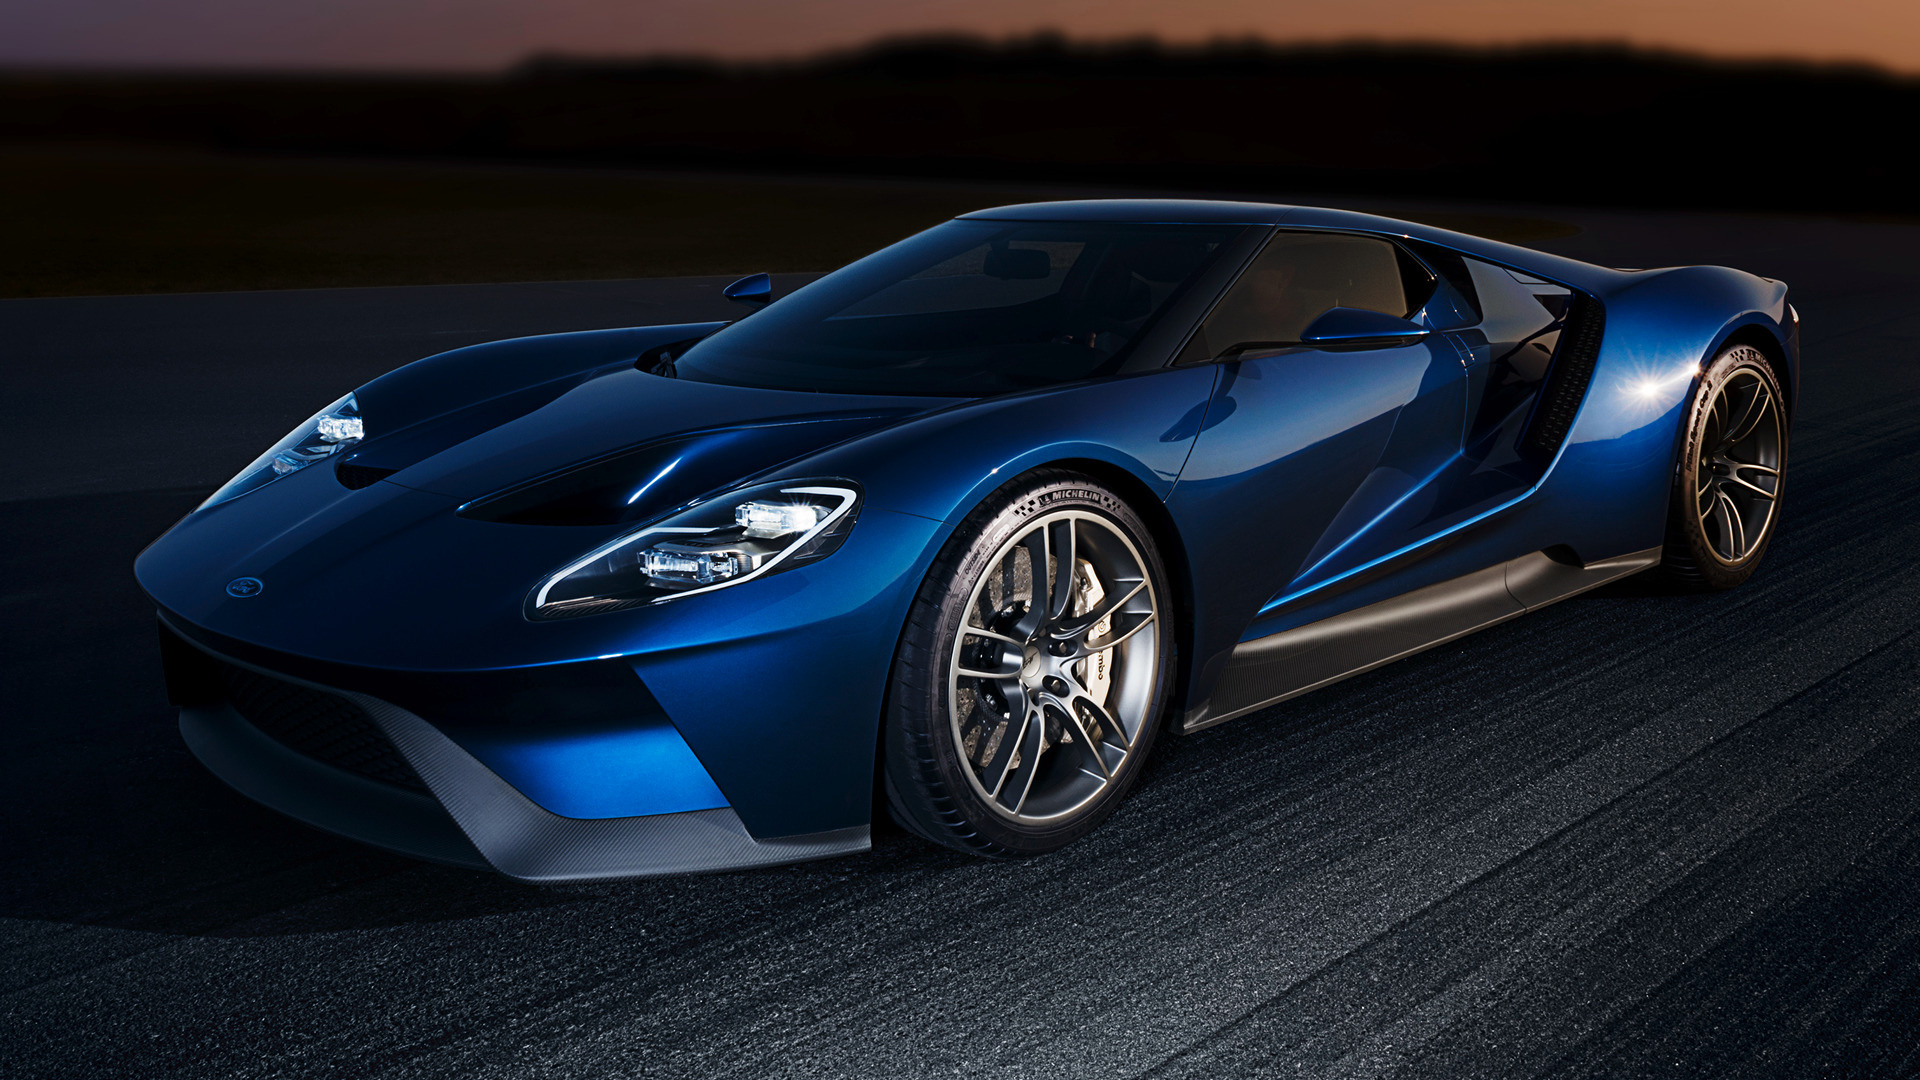 Heritage Volkswagen Subaru >> 2015 Ford GT Concept - Wallpapers and HD Images | Car Pixel